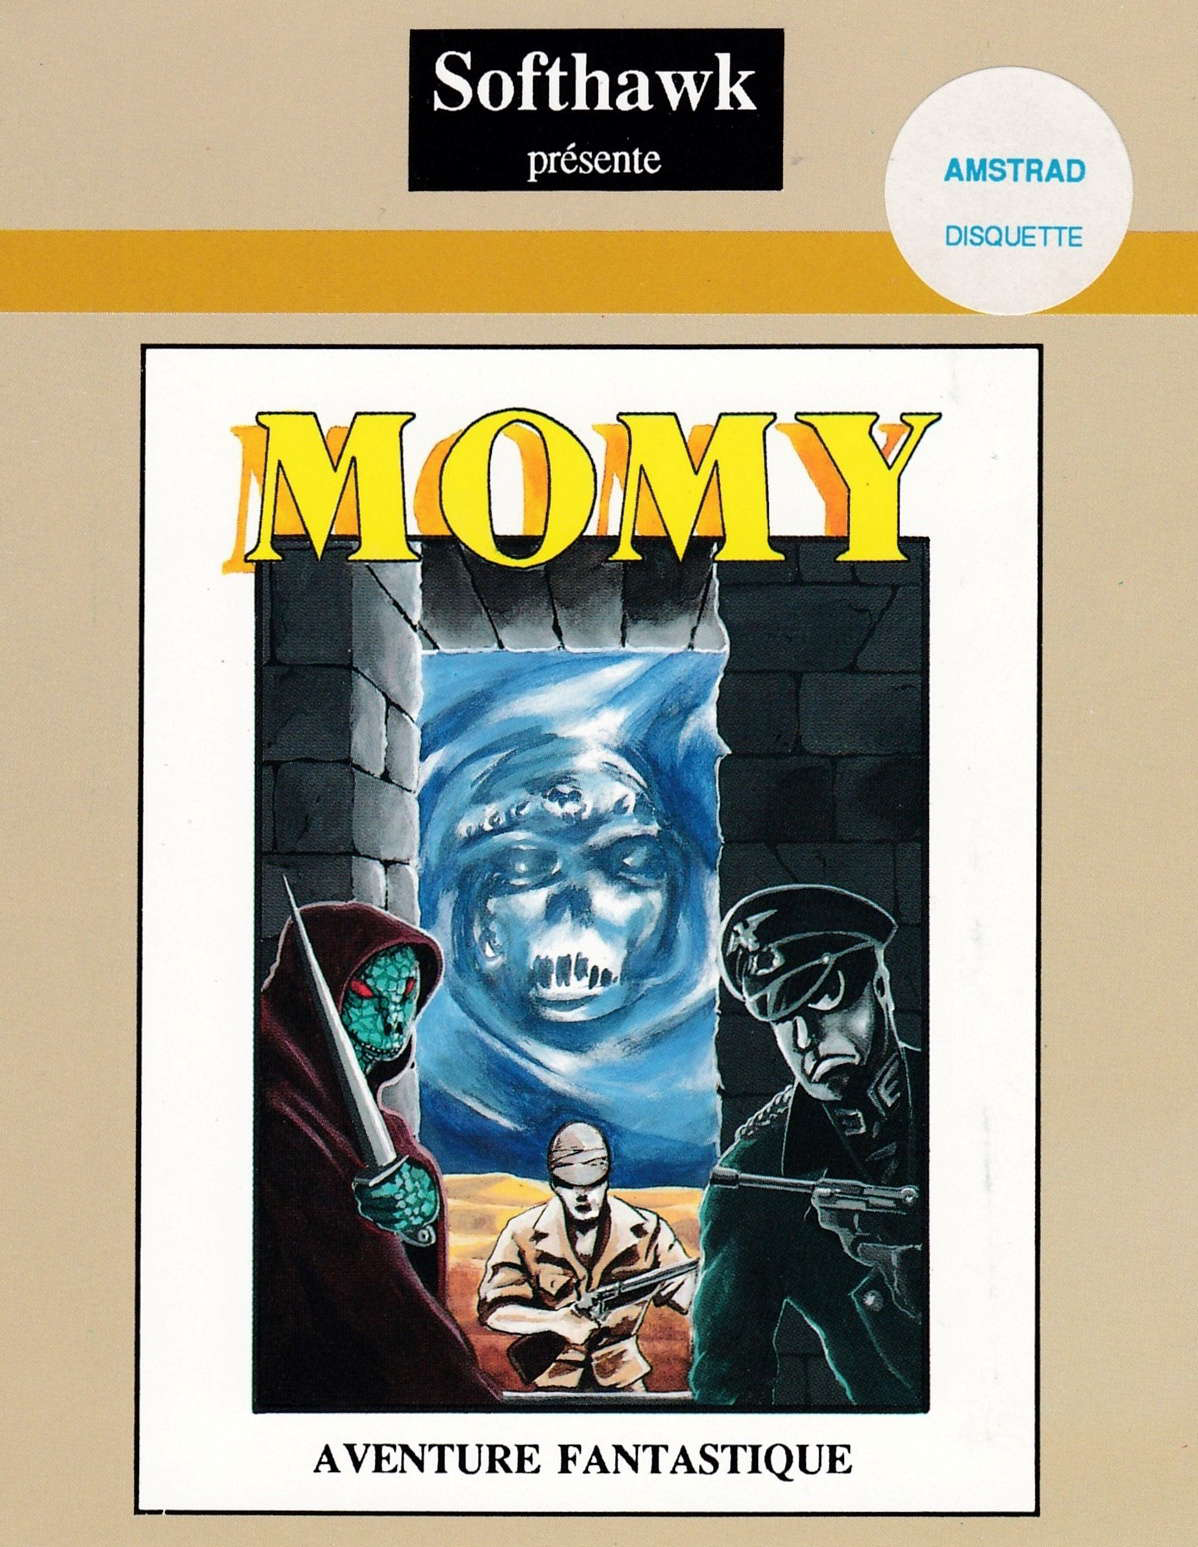 cover of the Amstrad CPC game Momy  by GameBase CPC